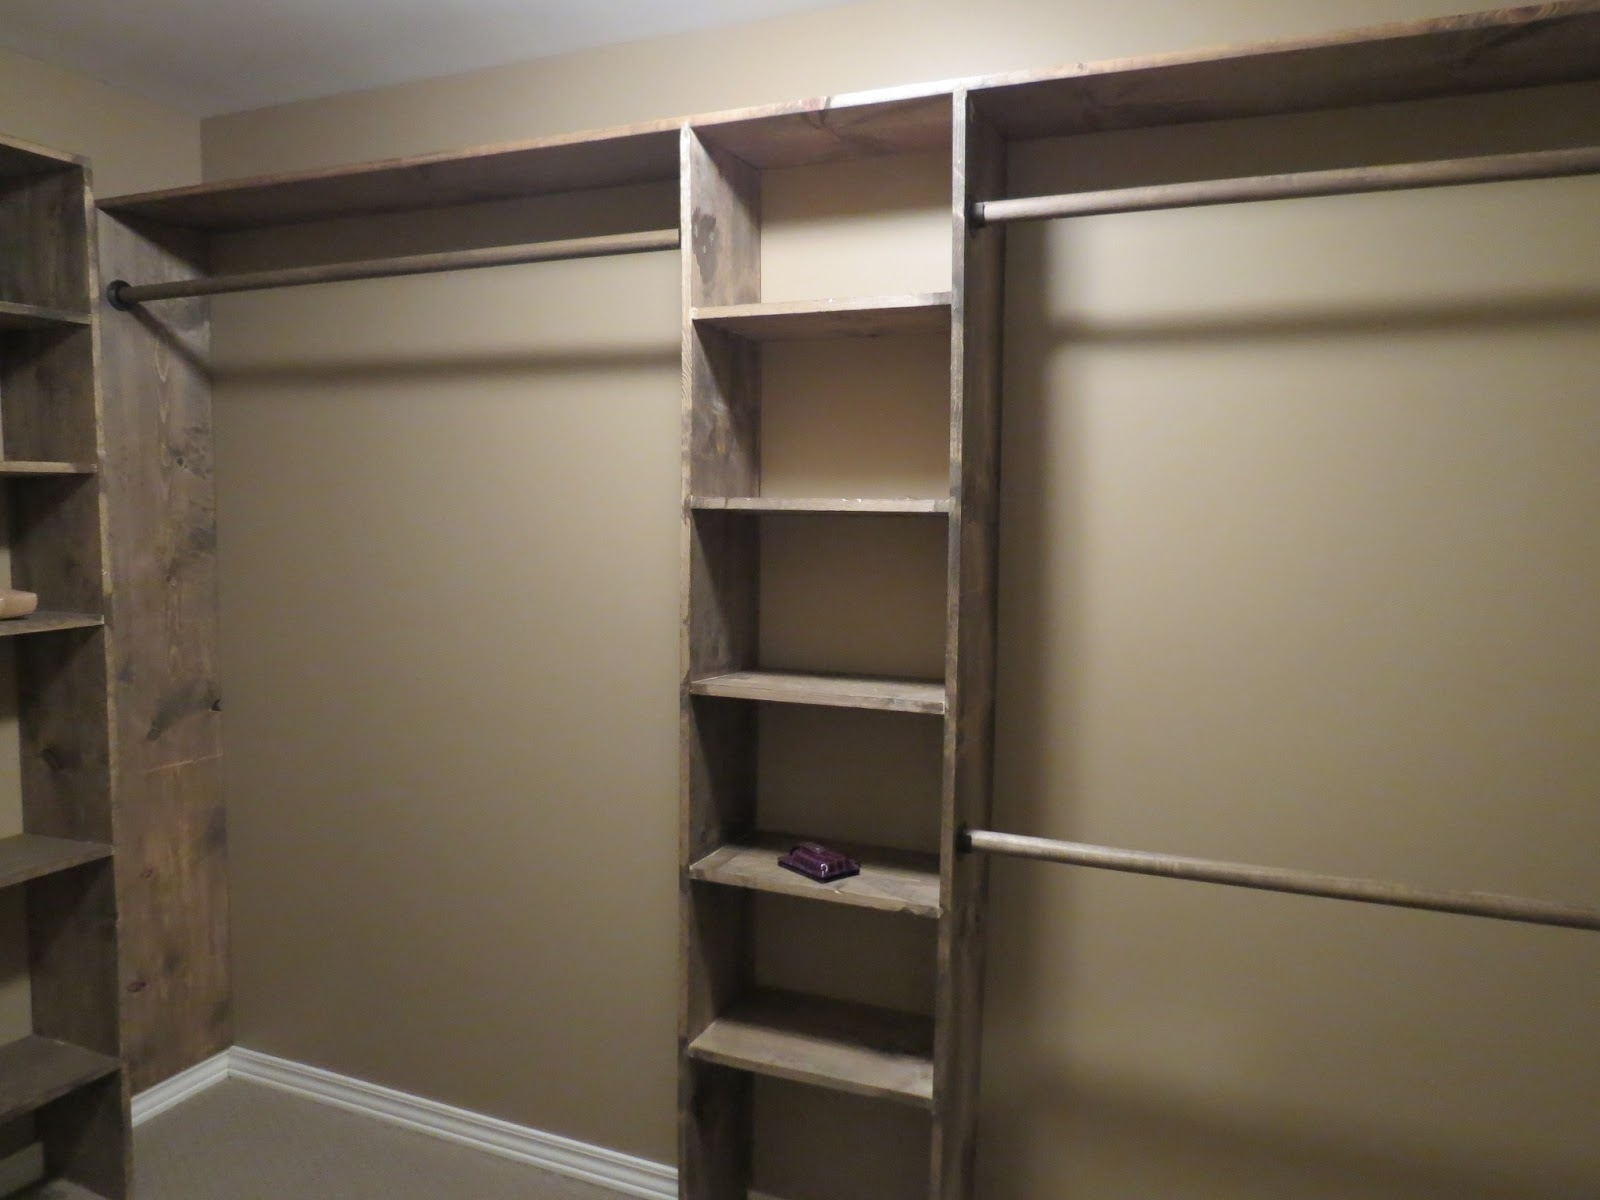 Inspiring Storage System Design Ideas with Cedar Closet Kit: Aromatic Cedar Wood | Cedar Closet Kit | Cedar Planks For Closets